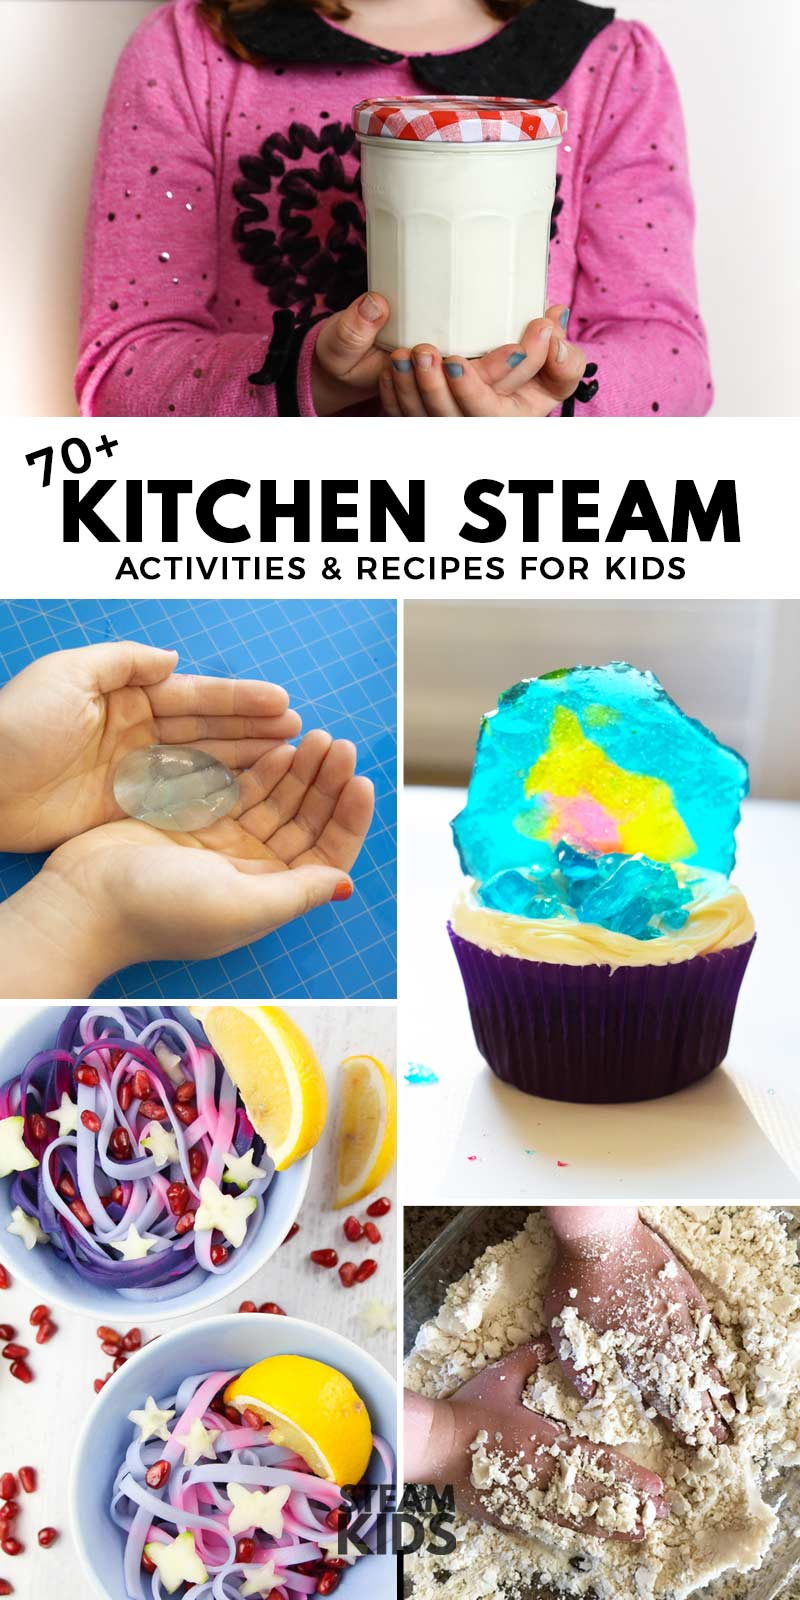 A new book in the wildly successful STEAM Kids book series, STEAM Kids in the Kitchen is packed with over 70 activities